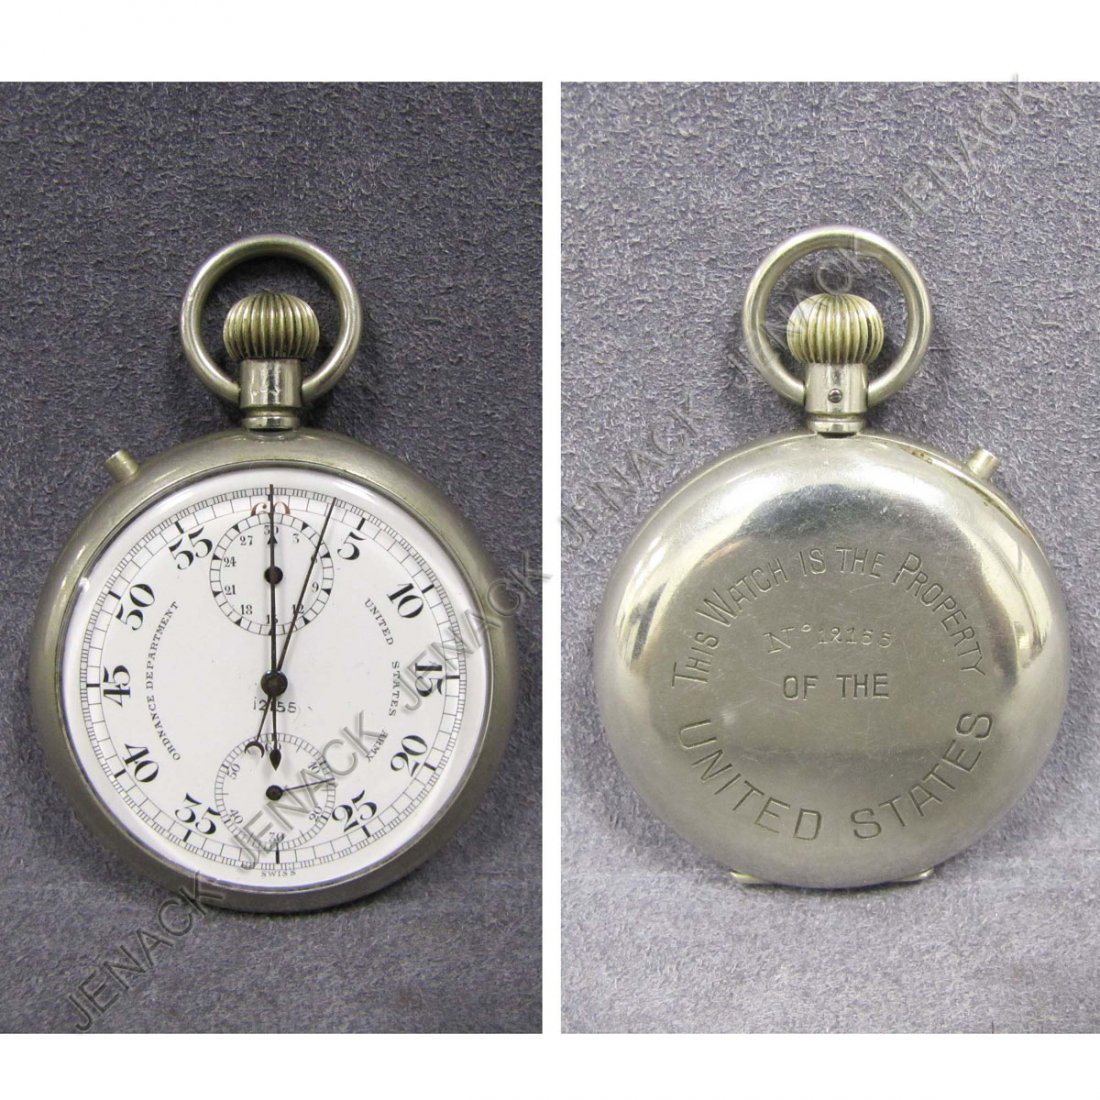 9: WWII UNITED STATES ARMY ORDNANCE DEPARTMENT WATCH